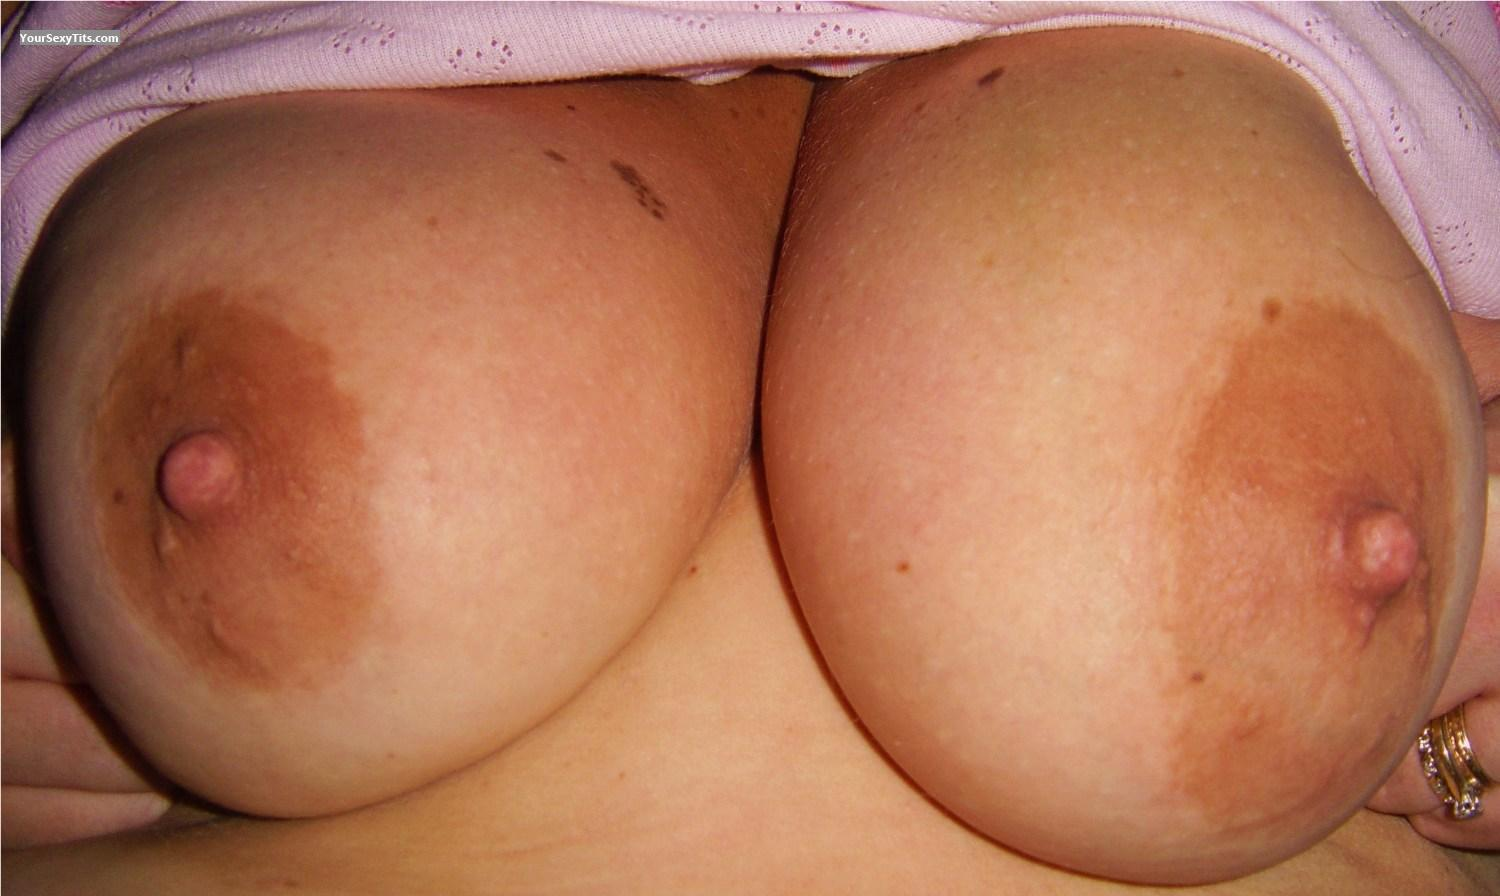 Tit Flash: Big Tits - Joanne from United Kingdom